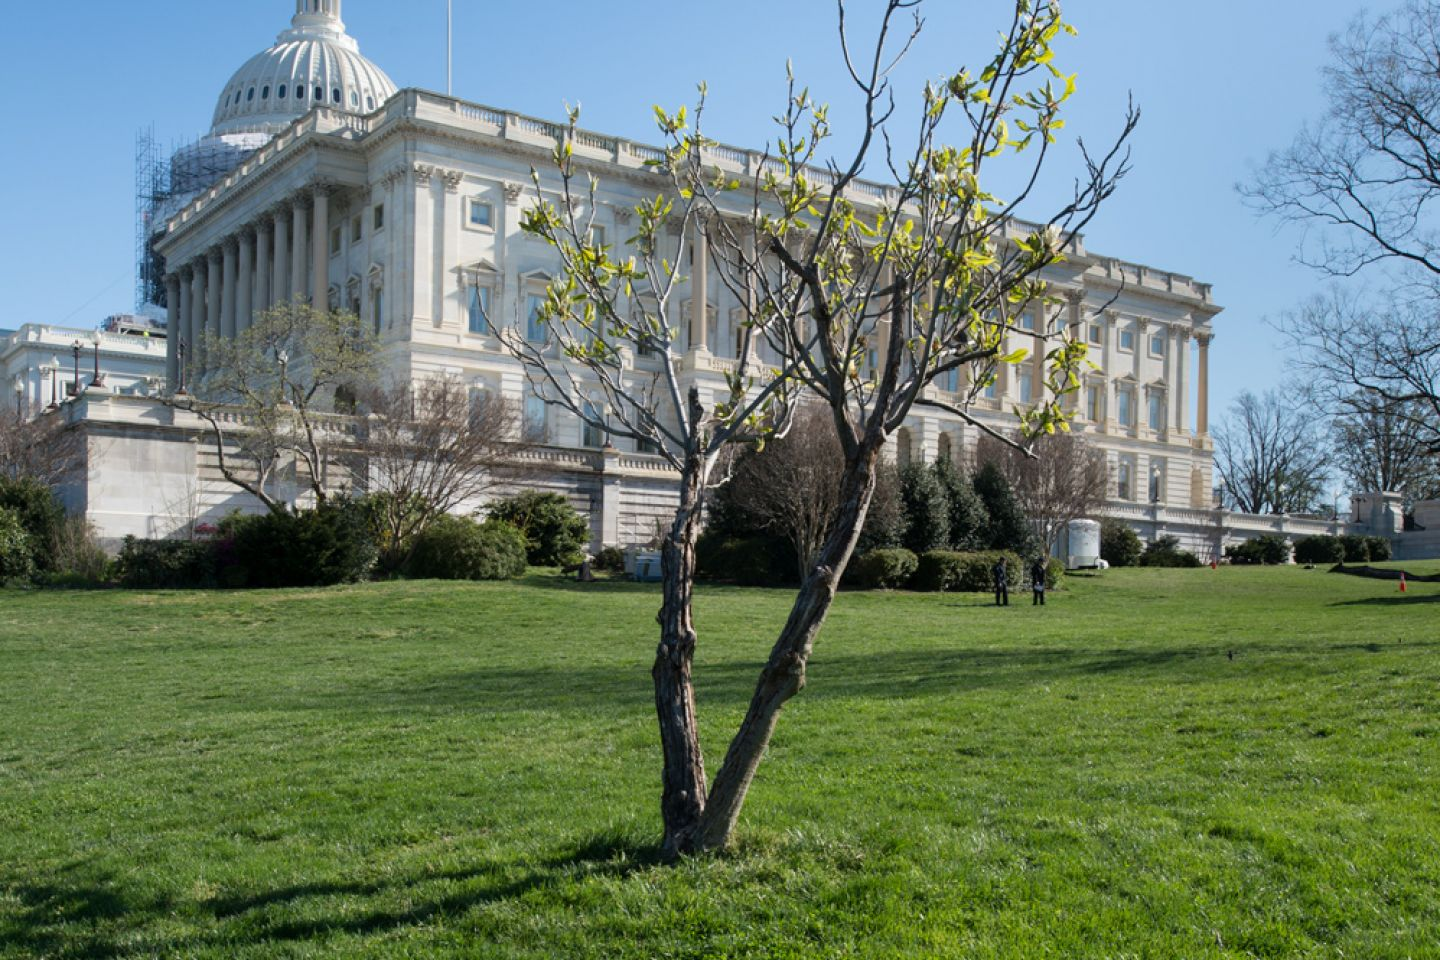 The Wangari Maathai tree on U.S. Capitol Grounds in spring.